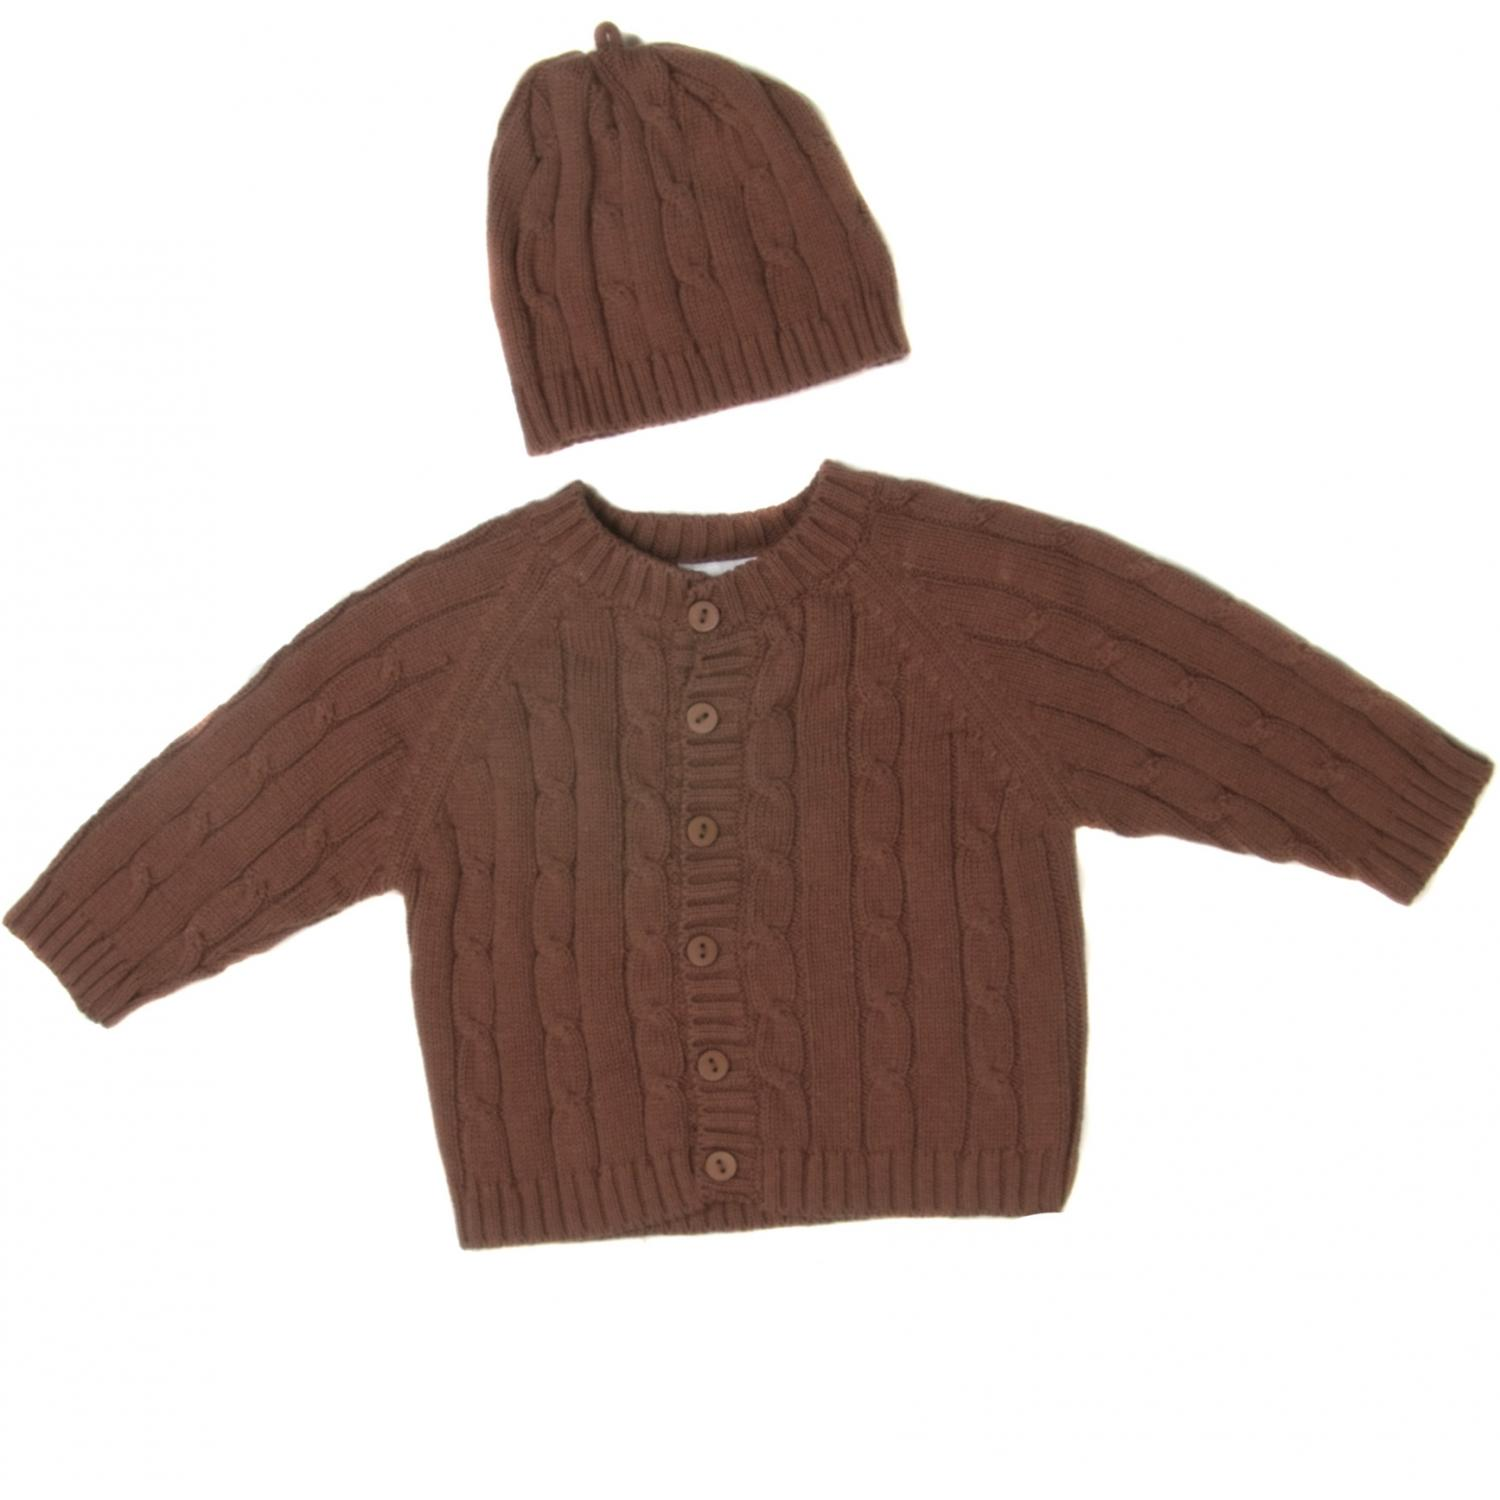 Elegant Baby Cable Knit Sweater Box Set 6 Months - Chocolate Brown